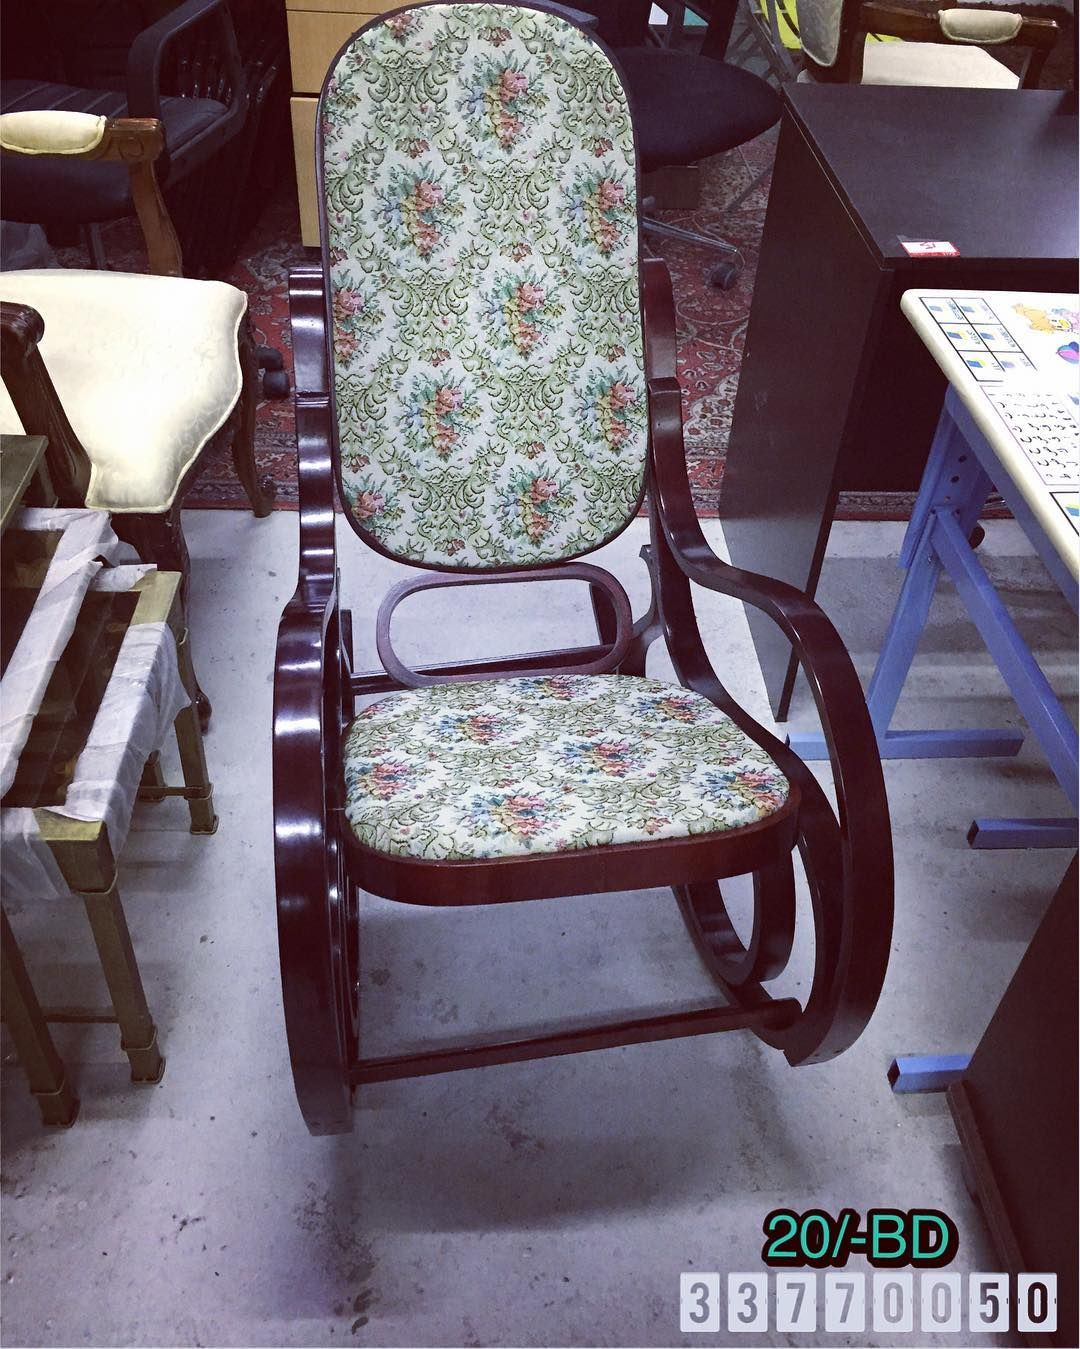 For Sale Rocking Wooden Chair Brown Color New Made In China Price 20 Bd للبيع كرسي خشب هزاز لون بني جديد صنع في ال Rocking Chair Chair Decor